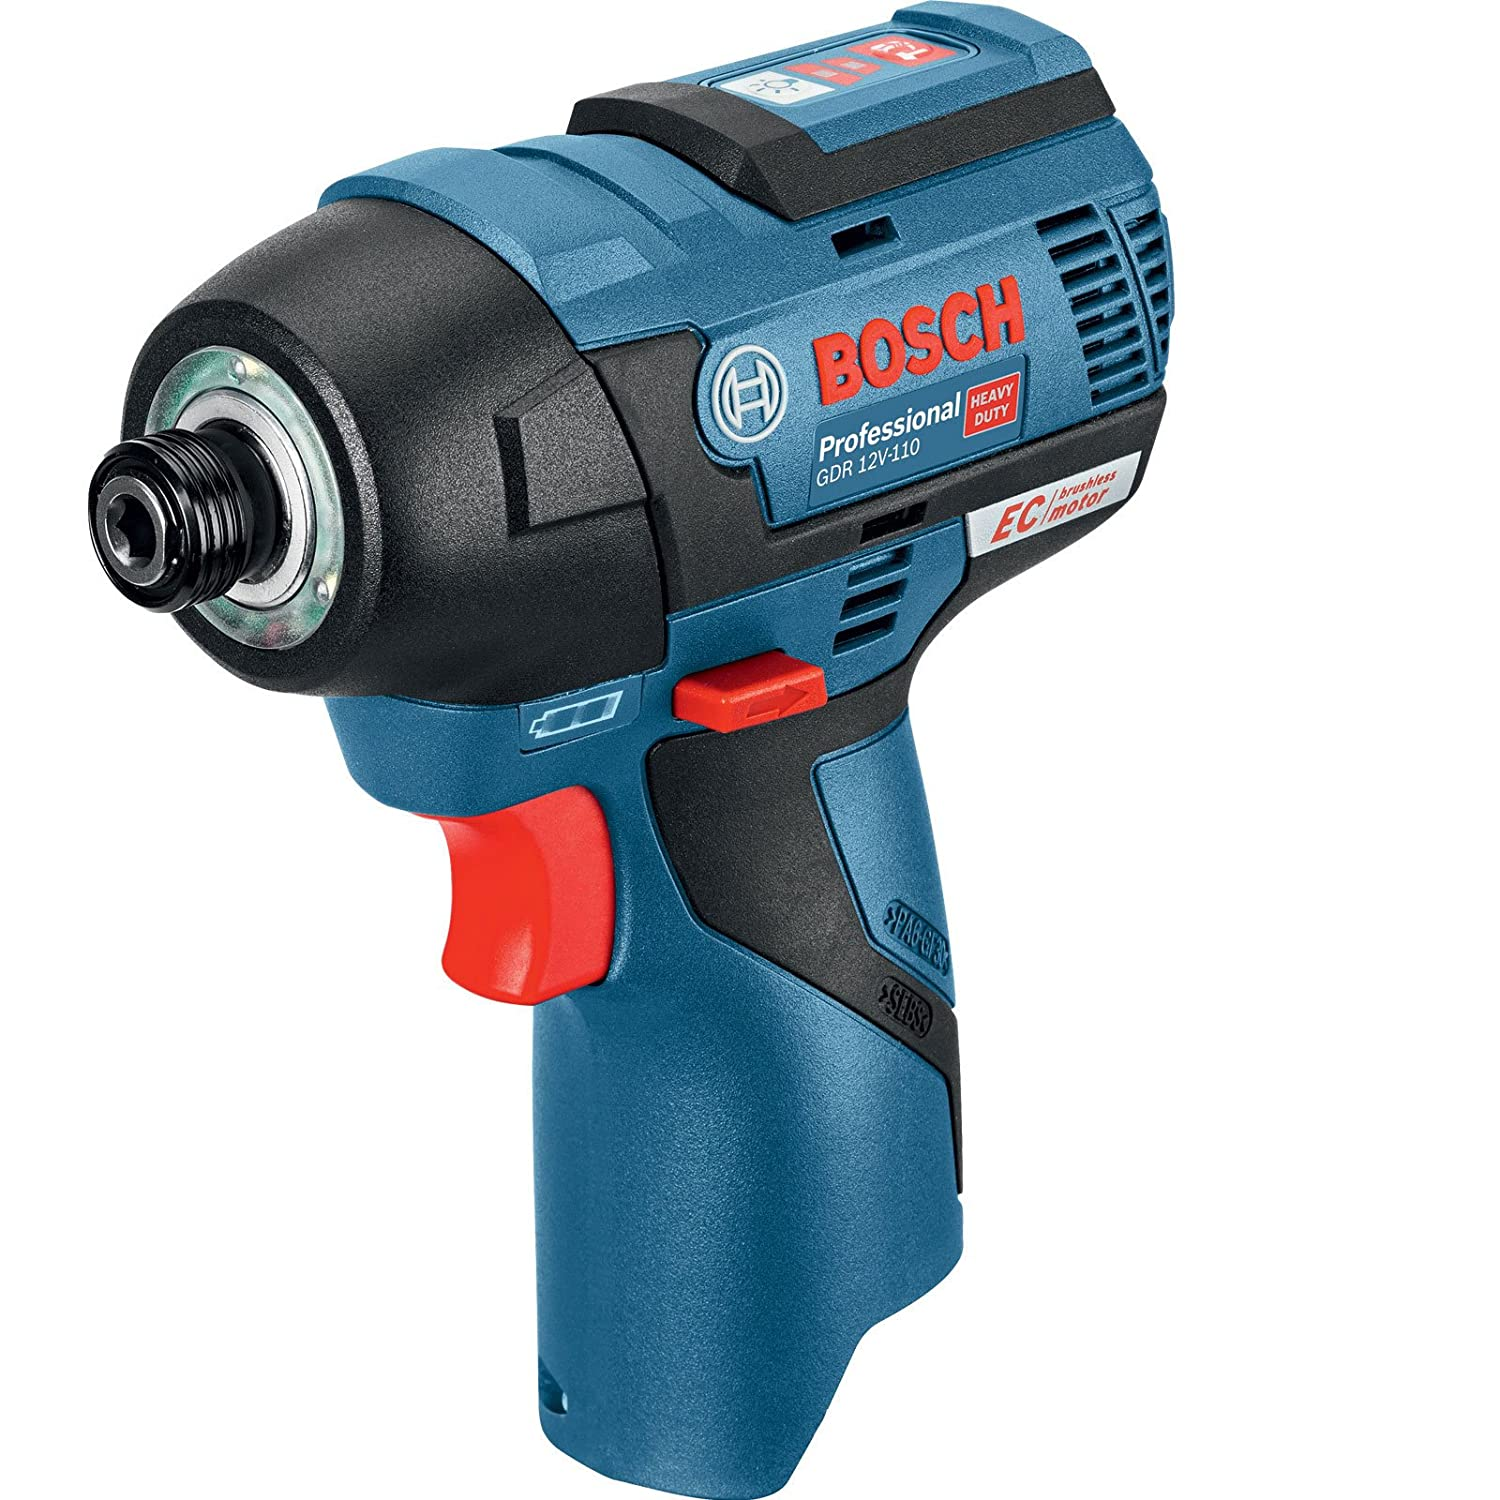 Bosch Professional GDR 12 V-EC Cordless Impact Driver (Without Battery and Charger) - Carton 06019E0002